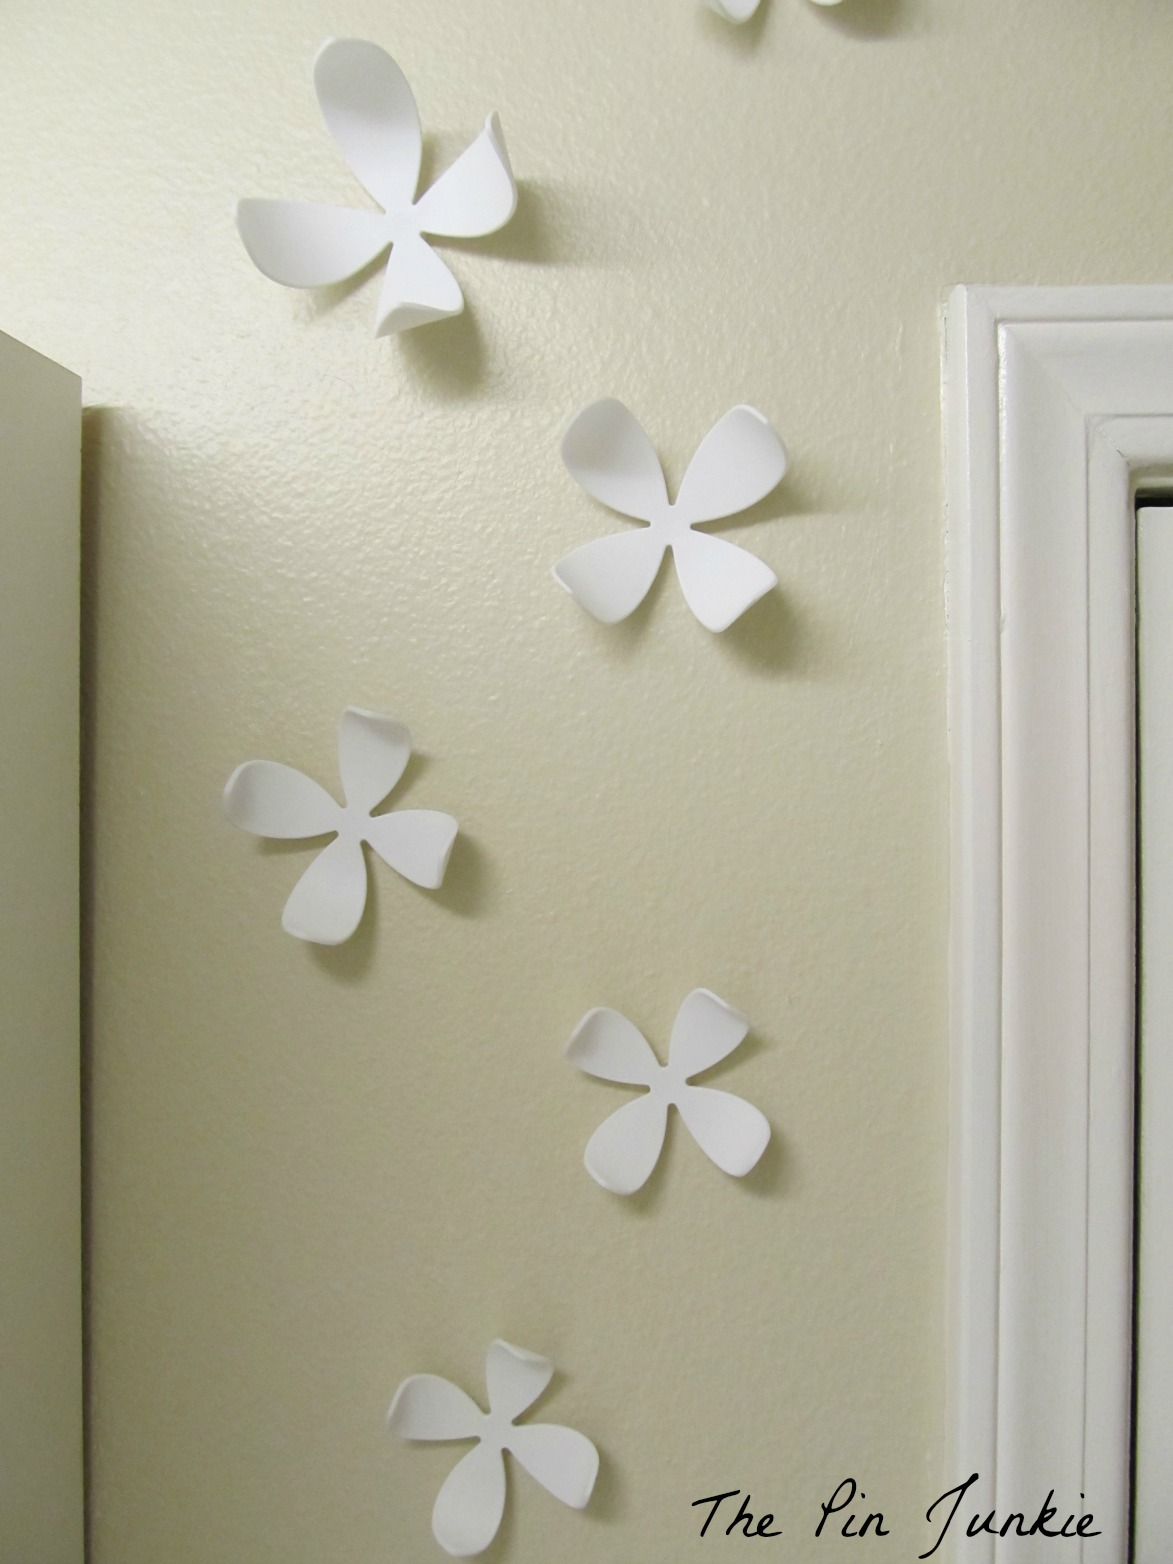 remodelaholic laundry room makeover with personalized hanging umbra 3d wall flowers in laundry room the pin junkie featured on remodelaholic com